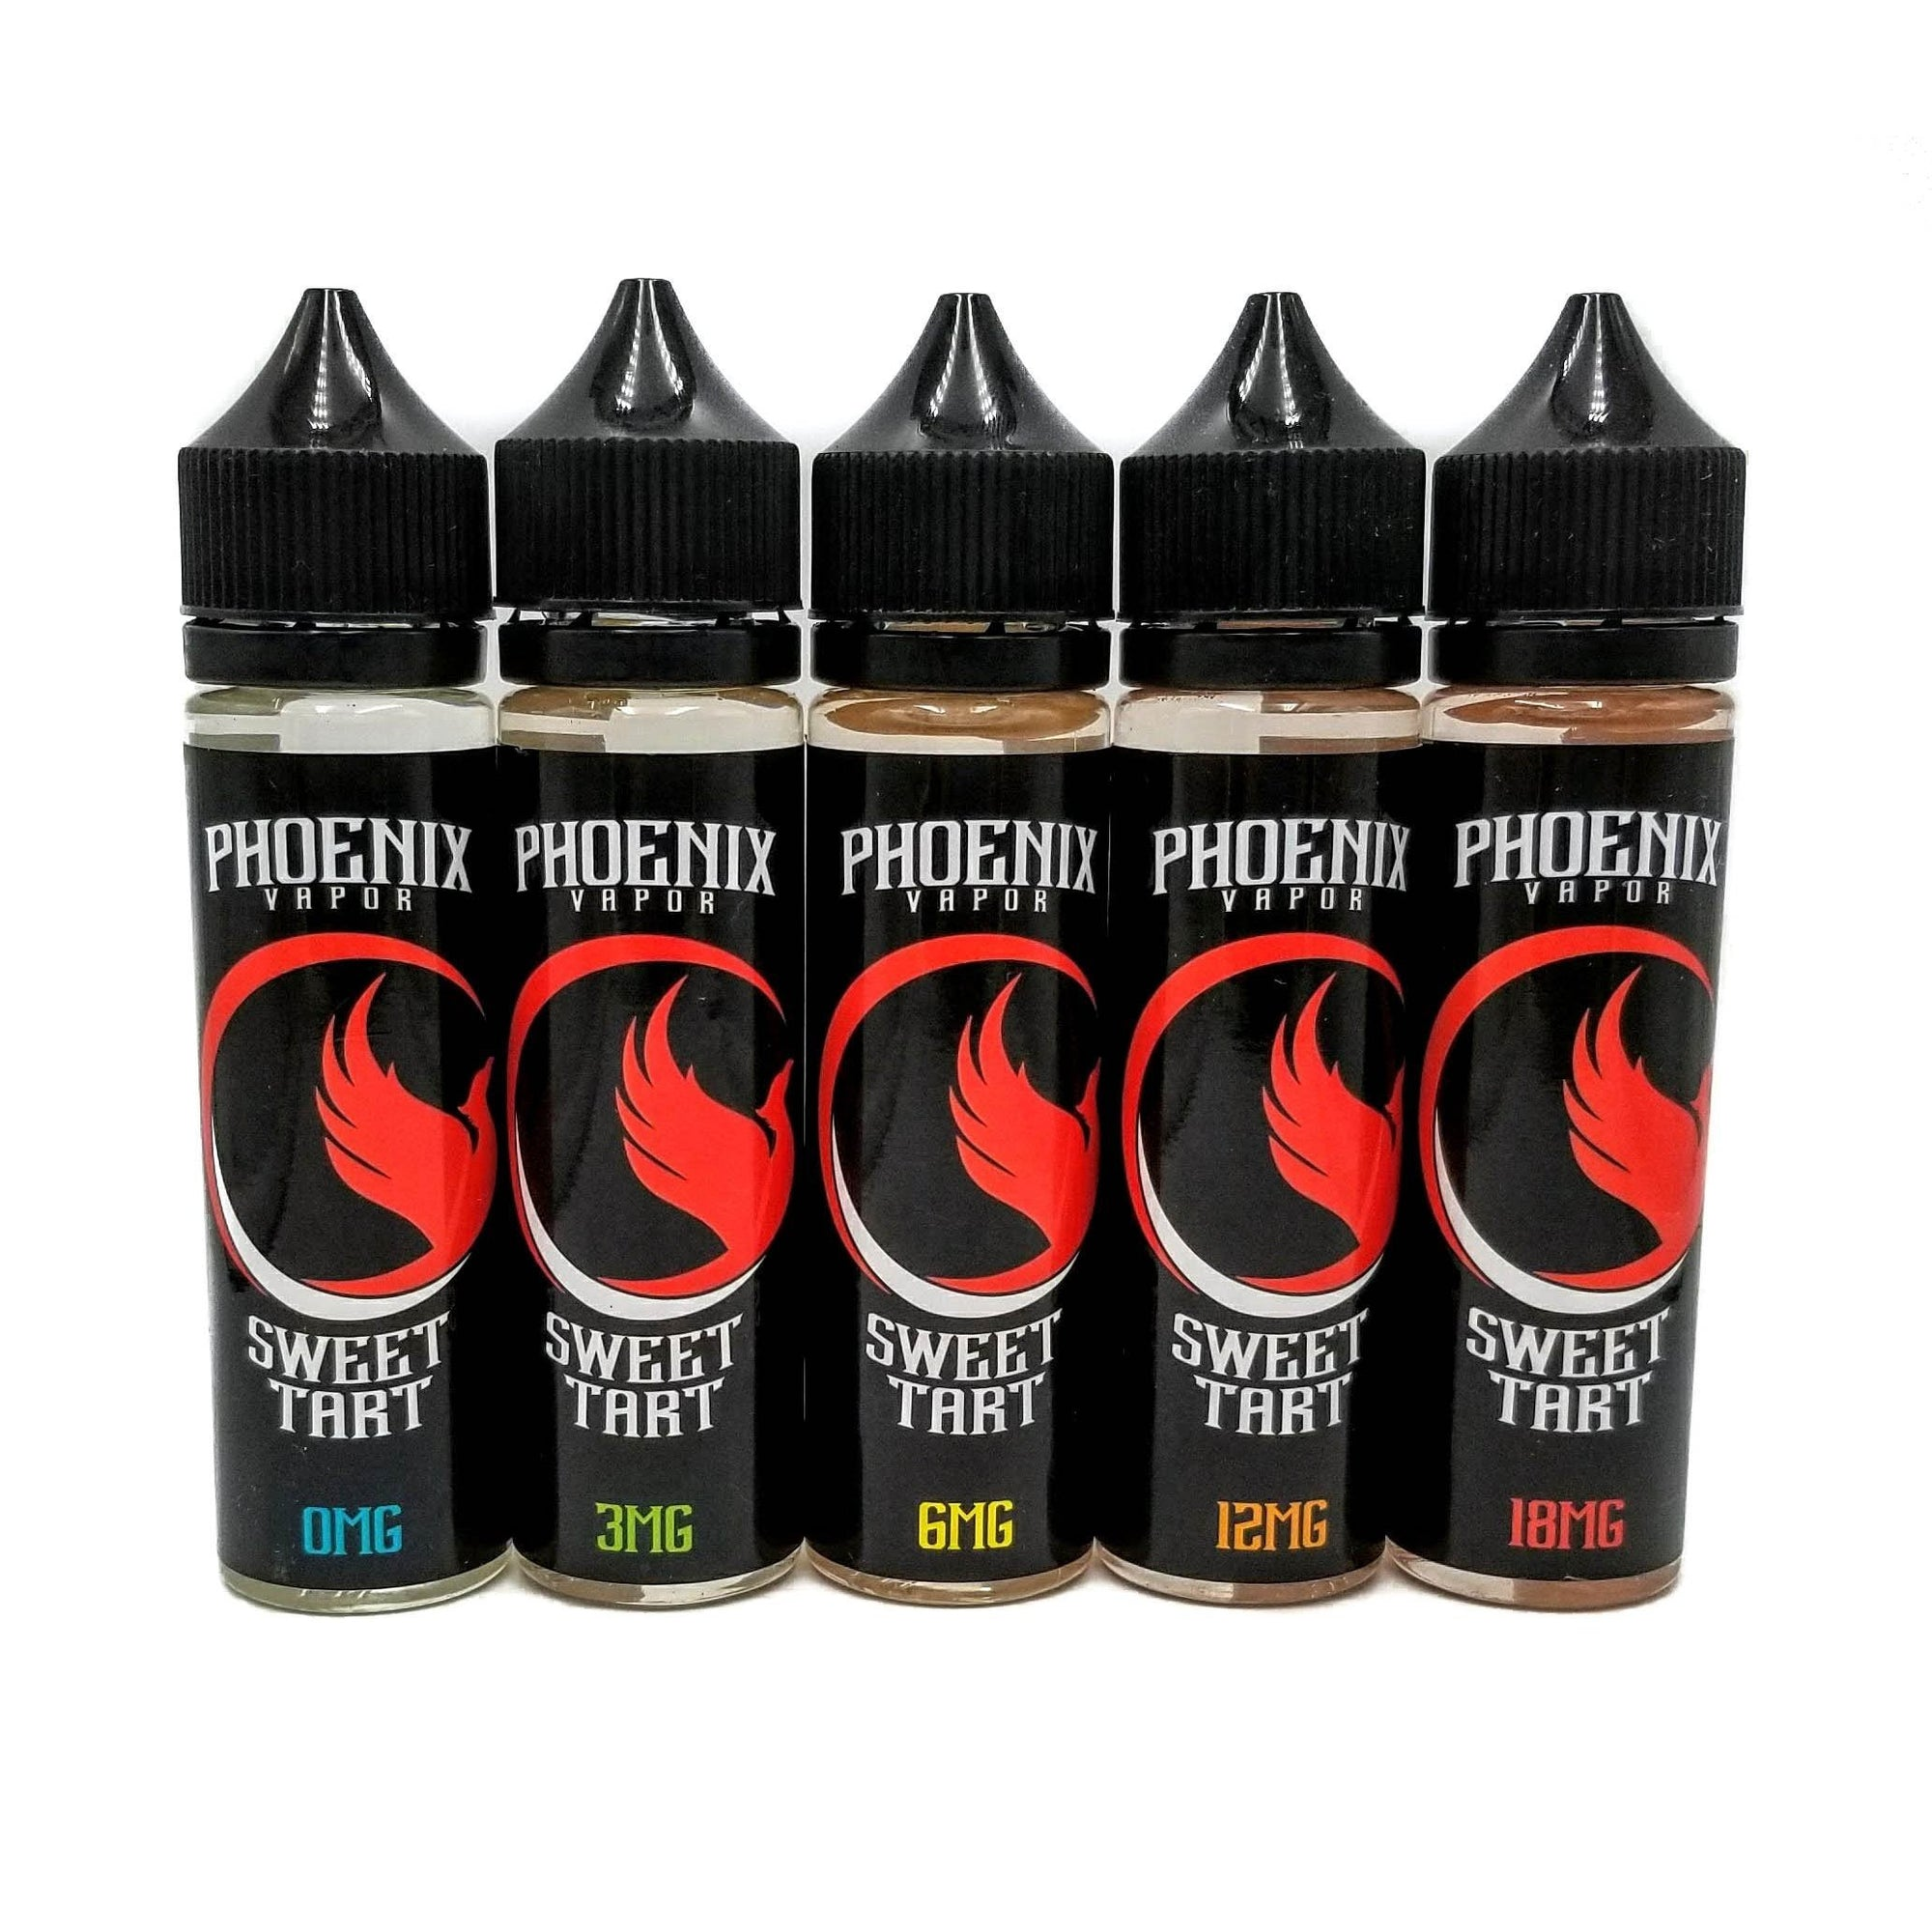 Phoenix Vapor E-Liquid E-Liquid 60ml / 0mg Sweet Tart by Phoenix Vapor